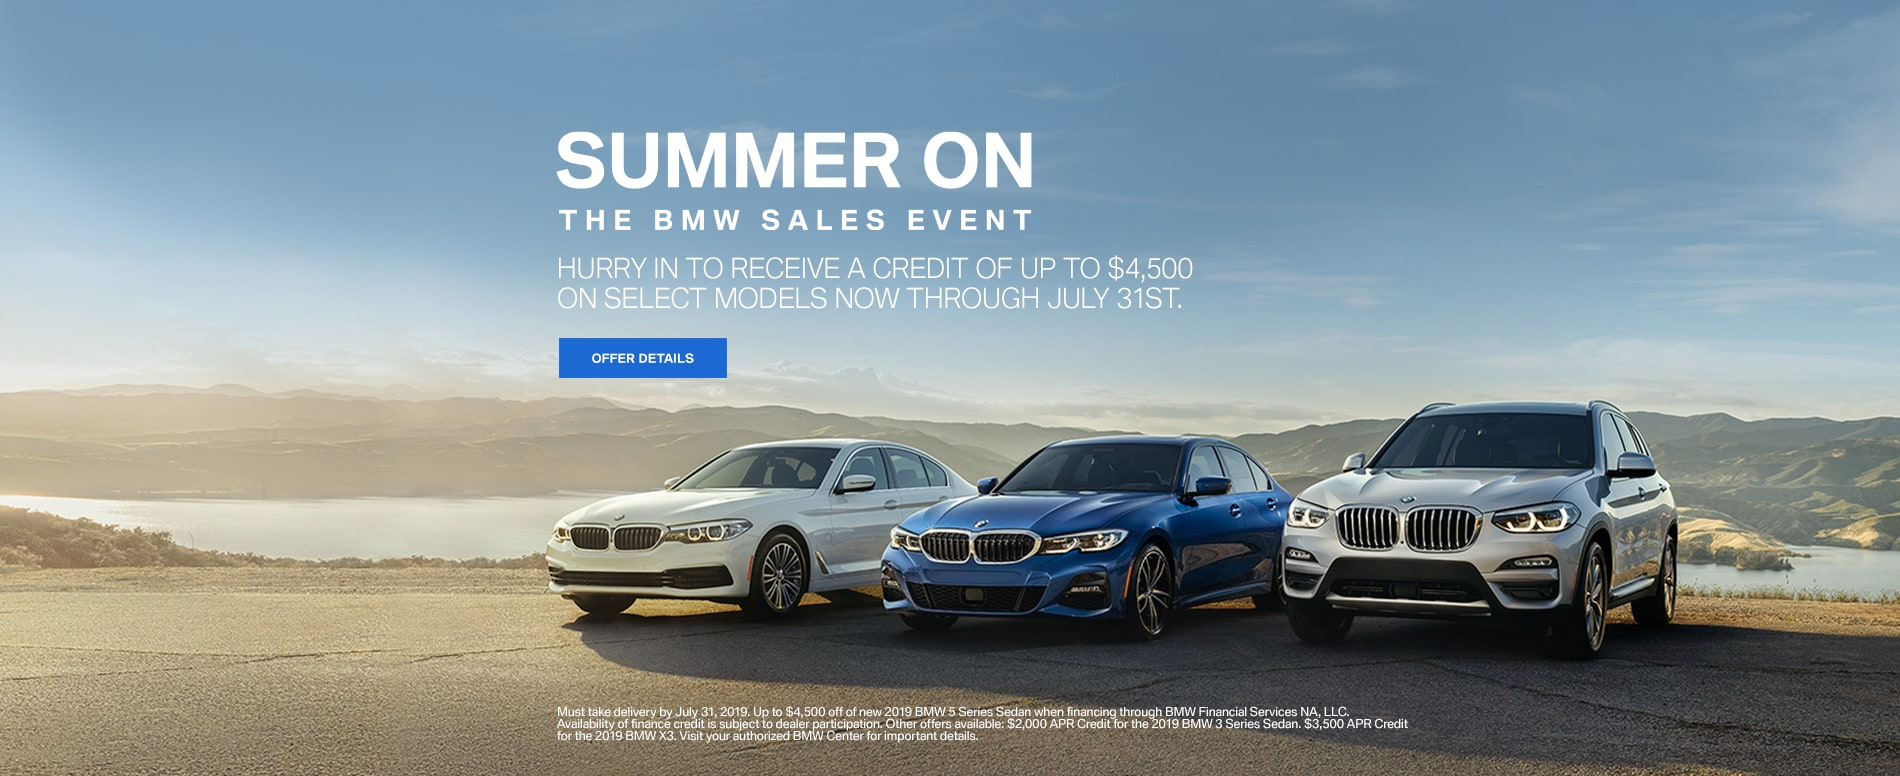 Delano Car Dealers >> Bmw Of Bakersfield New Used Bmw Cars Serving Arvin Shafter